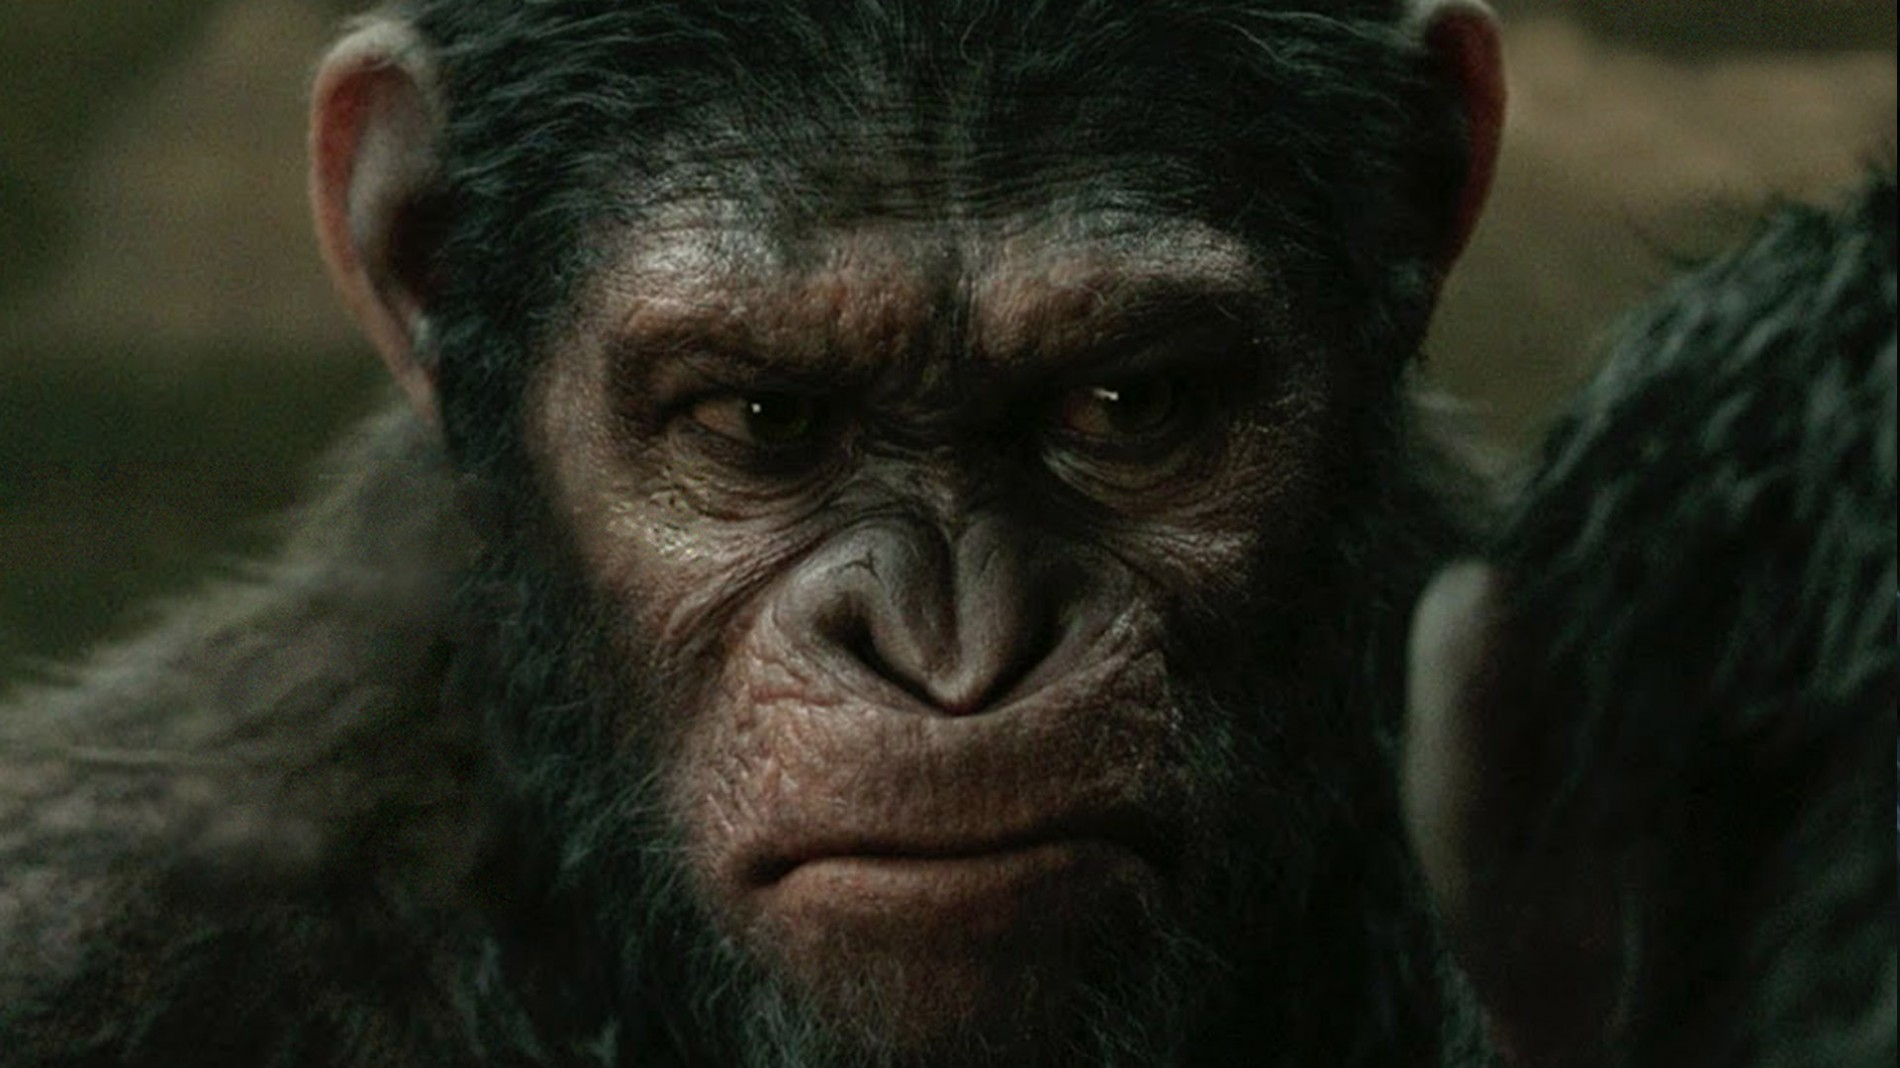 Senior Lighting Technical Director - Dawn of the Planet of the Apes